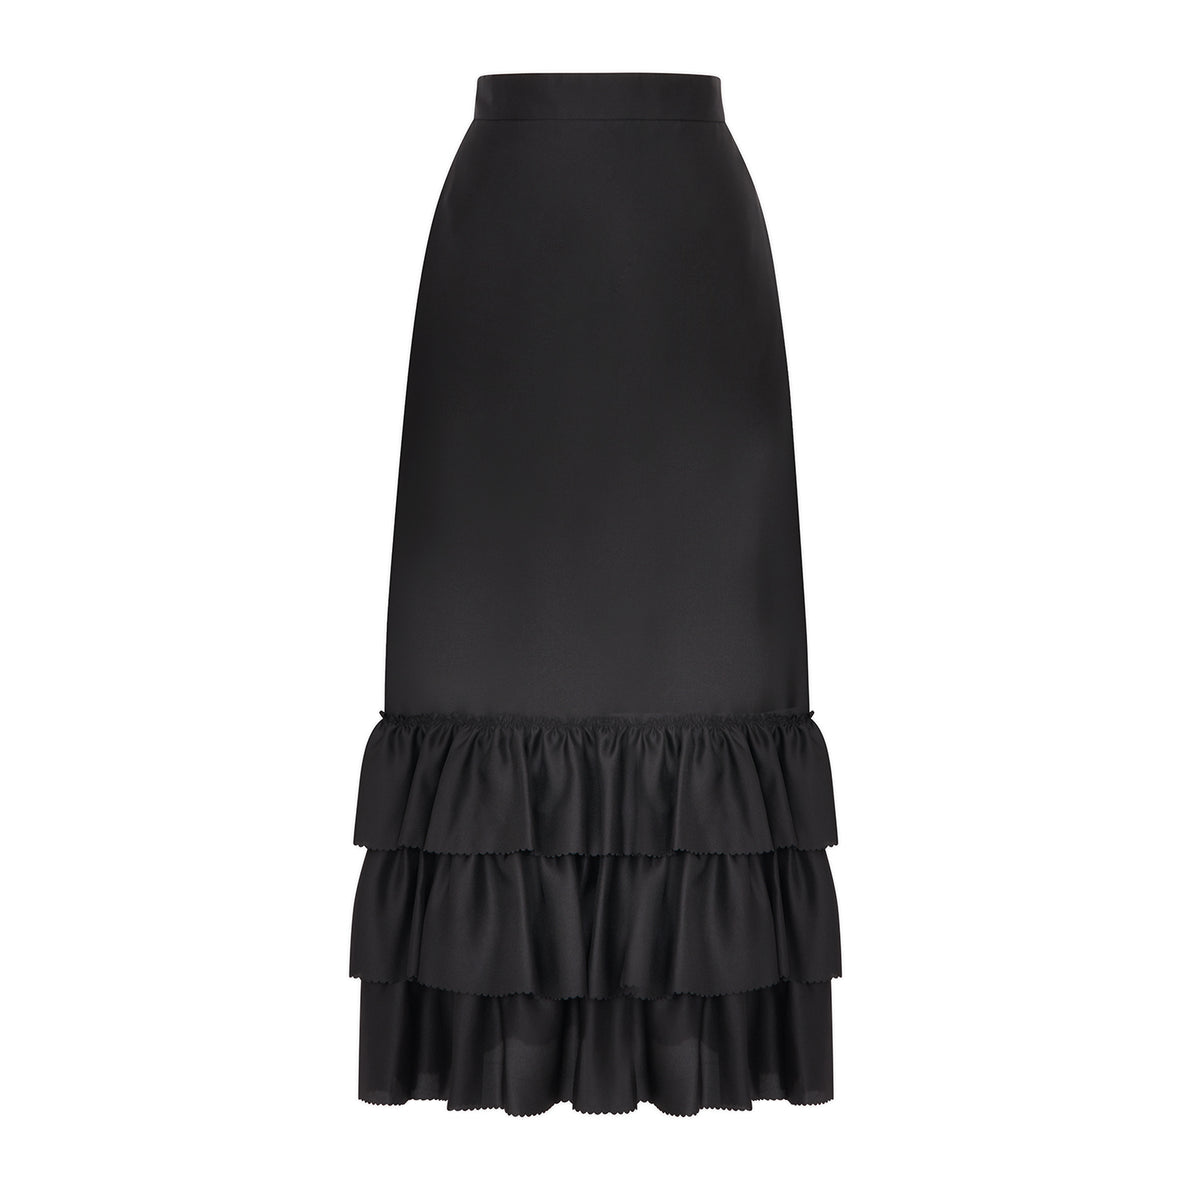 THE TROUBLE IN MIND SKIRT